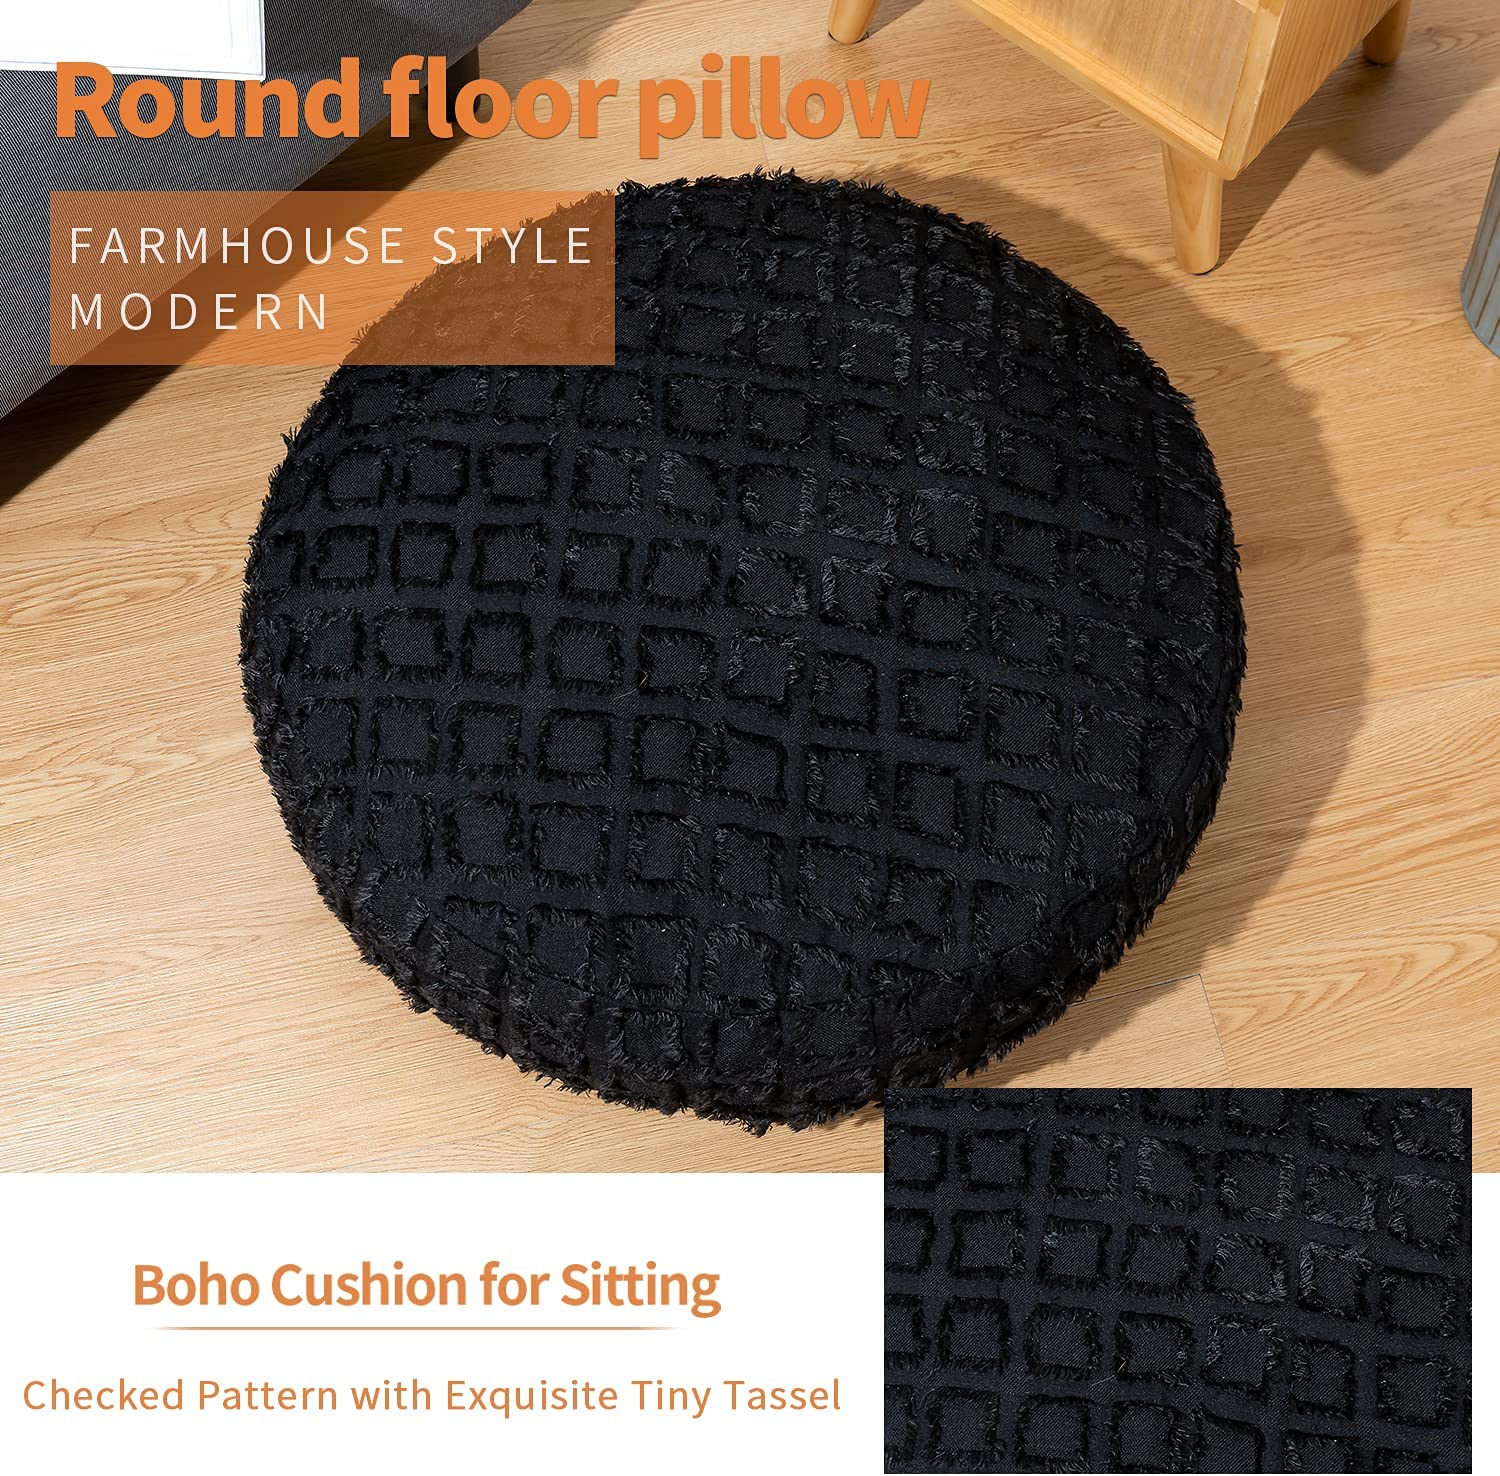 HIGOGOGO Floor Pillow, Solid Color Plaid Floor Cushion, Round 3D Handmade Color-Checkered Floor Pouf Seating with Removable Cover for Reading, Study, Movies and Games, Black, Diameter 24 Inch: Kitchen & Dining